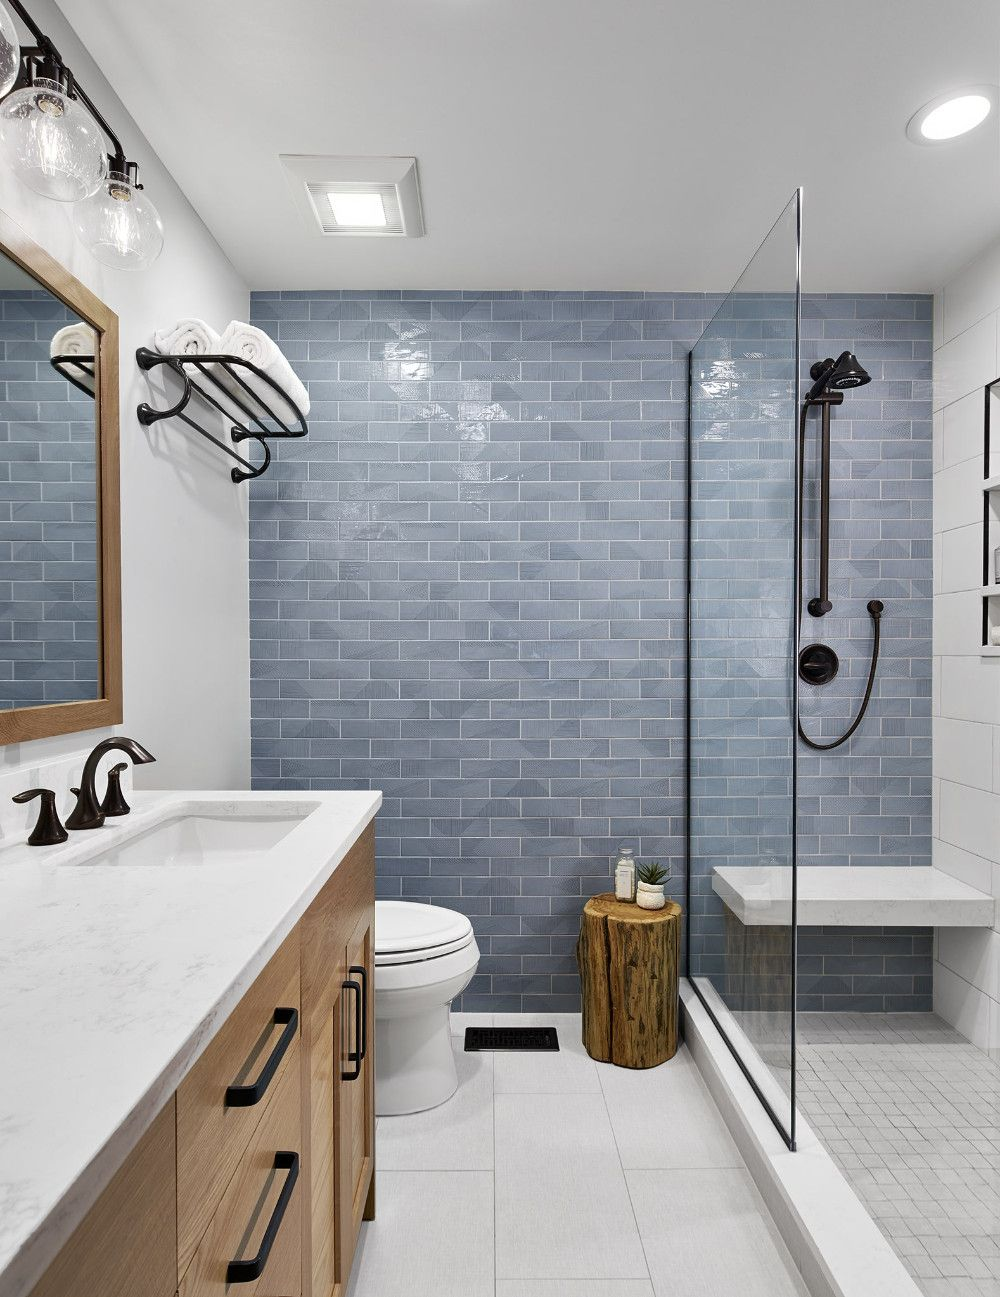 10 Cozy Design Small Bathroom Online Free She Shed Ideas Interior In 2020 | Bathroom Design Small, Small Bathroom Ideas Uk, Small Bathroom